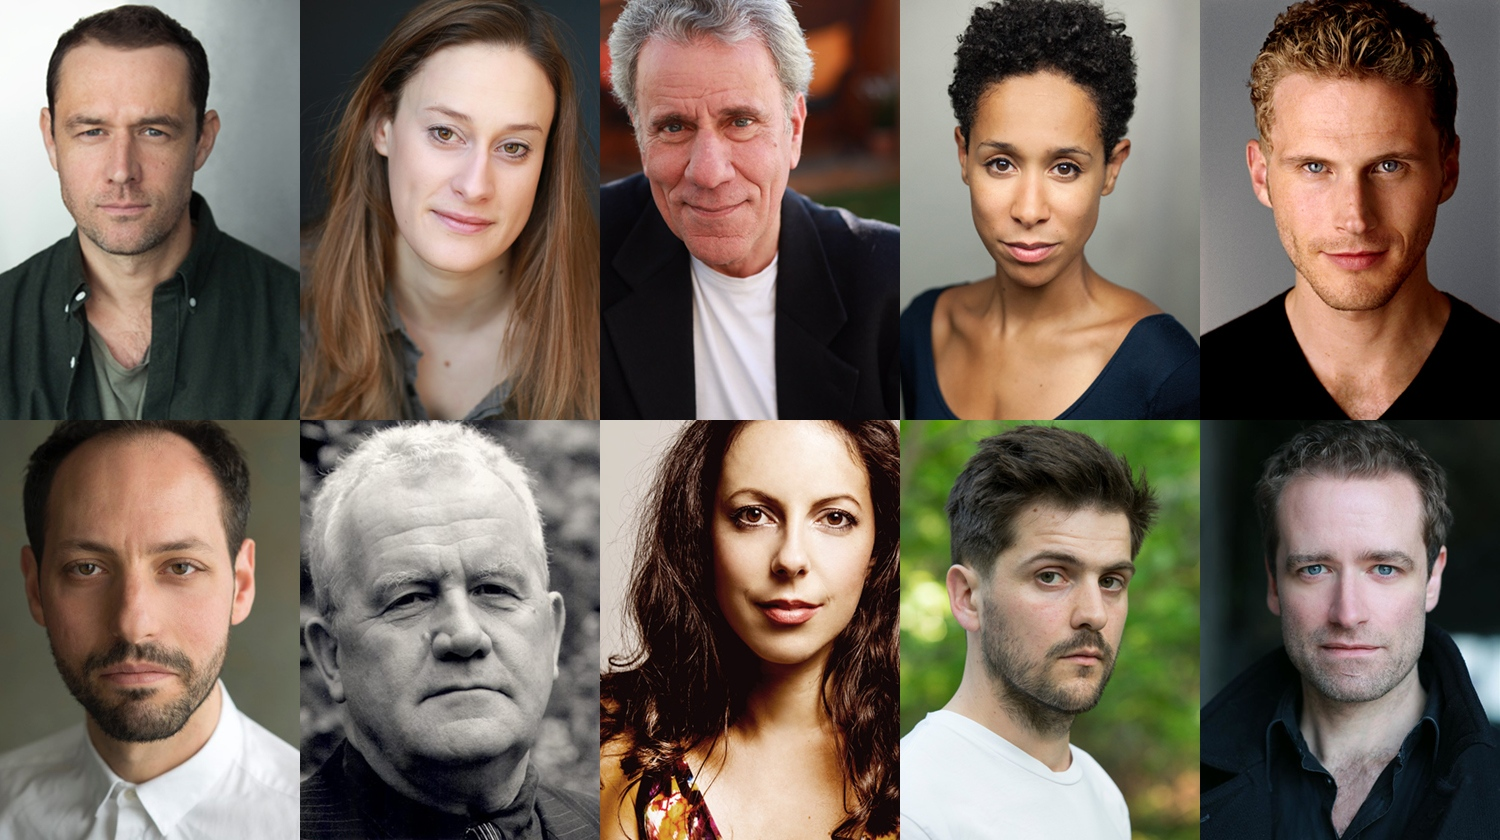 Headshots of the 10 actors who make up the Waiting for Lefty cast, they range in age, ethnicity and gender but they are all looking to camera.